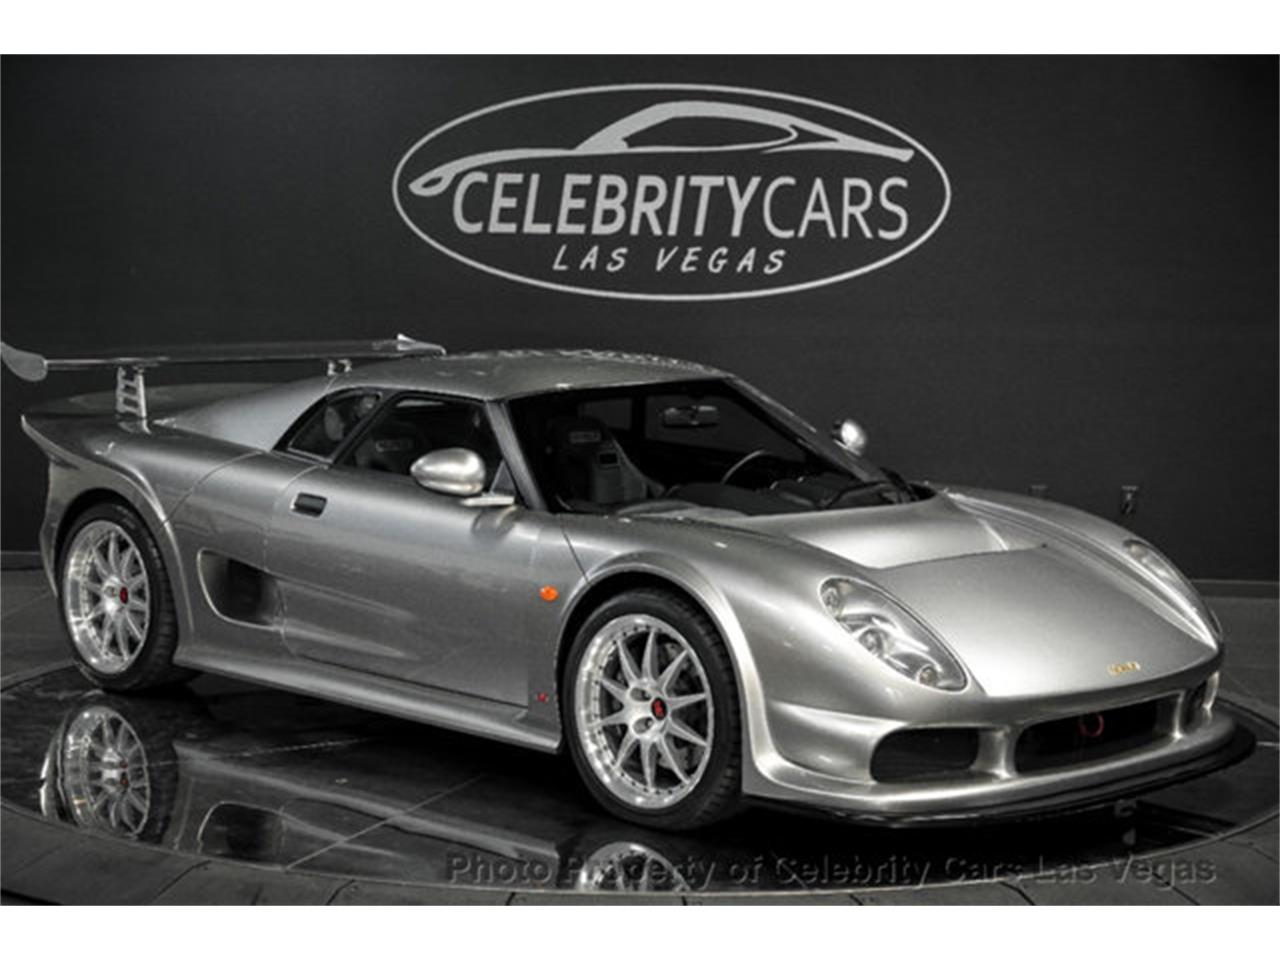 Large Picture of 2004 Noble M12 GTO-3R Offered by Celebrity Cars Las Vegas - OY16